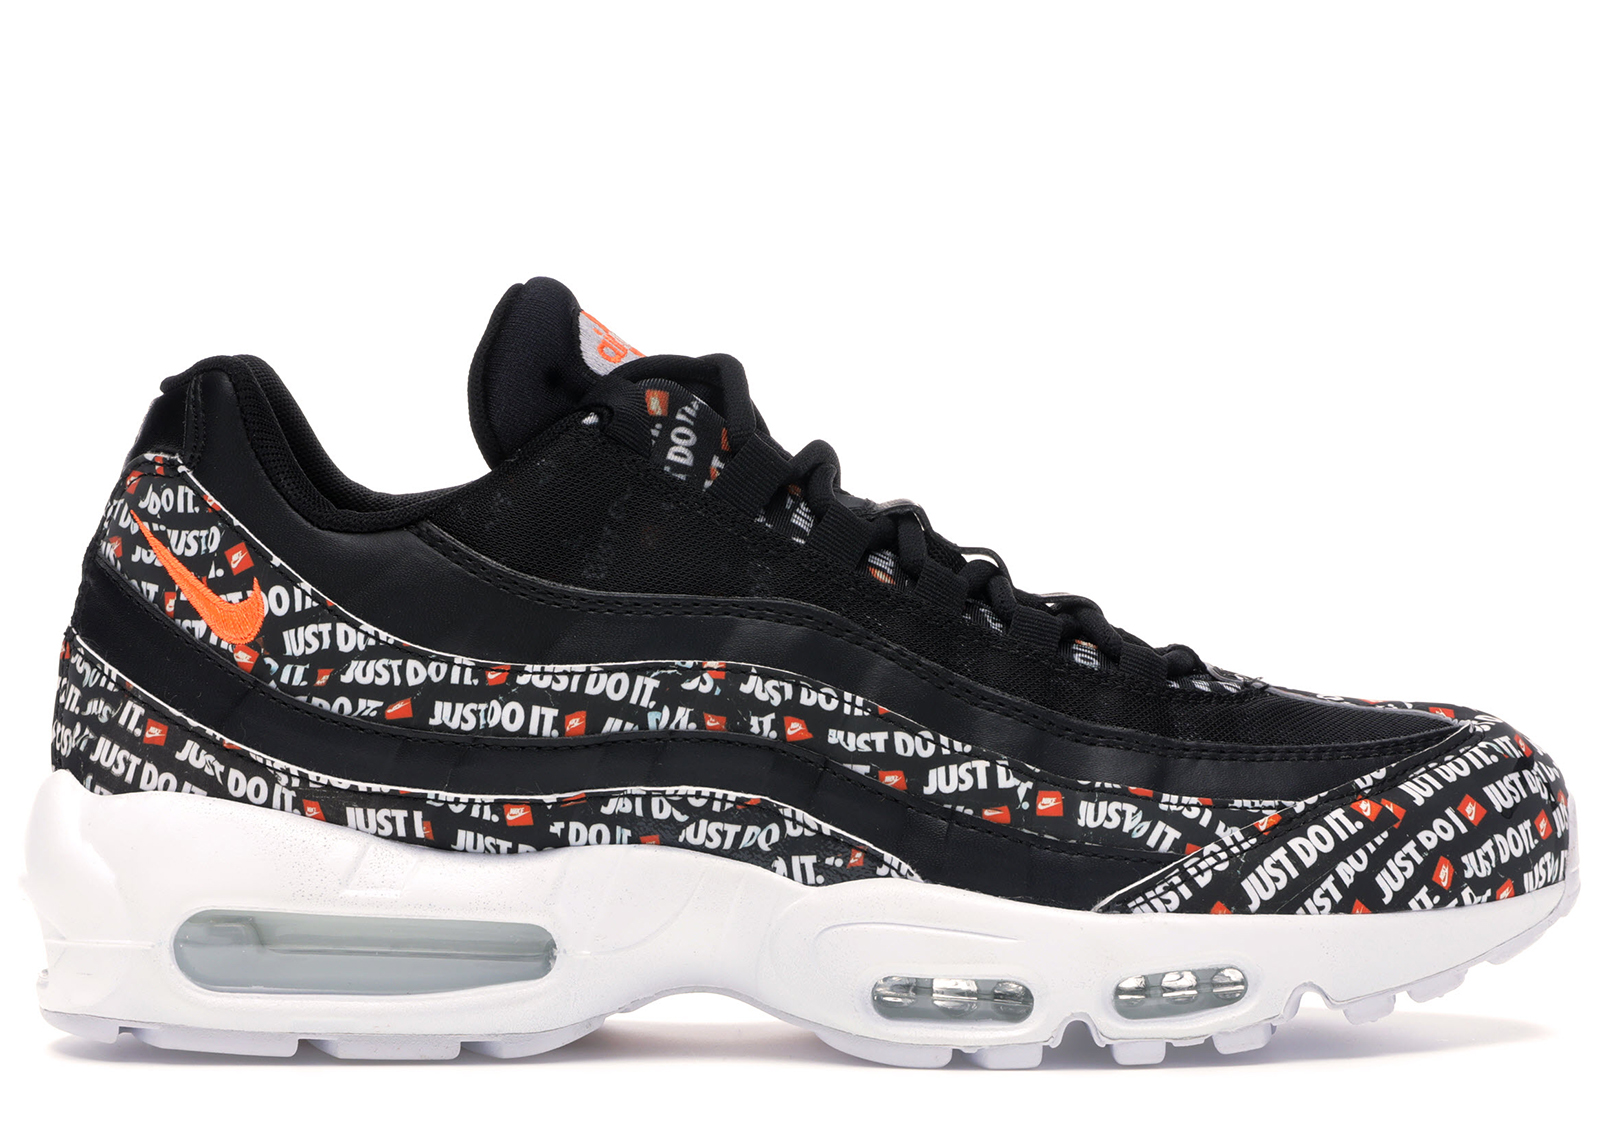 Nike Air Max 95 Just Do It Pack Black